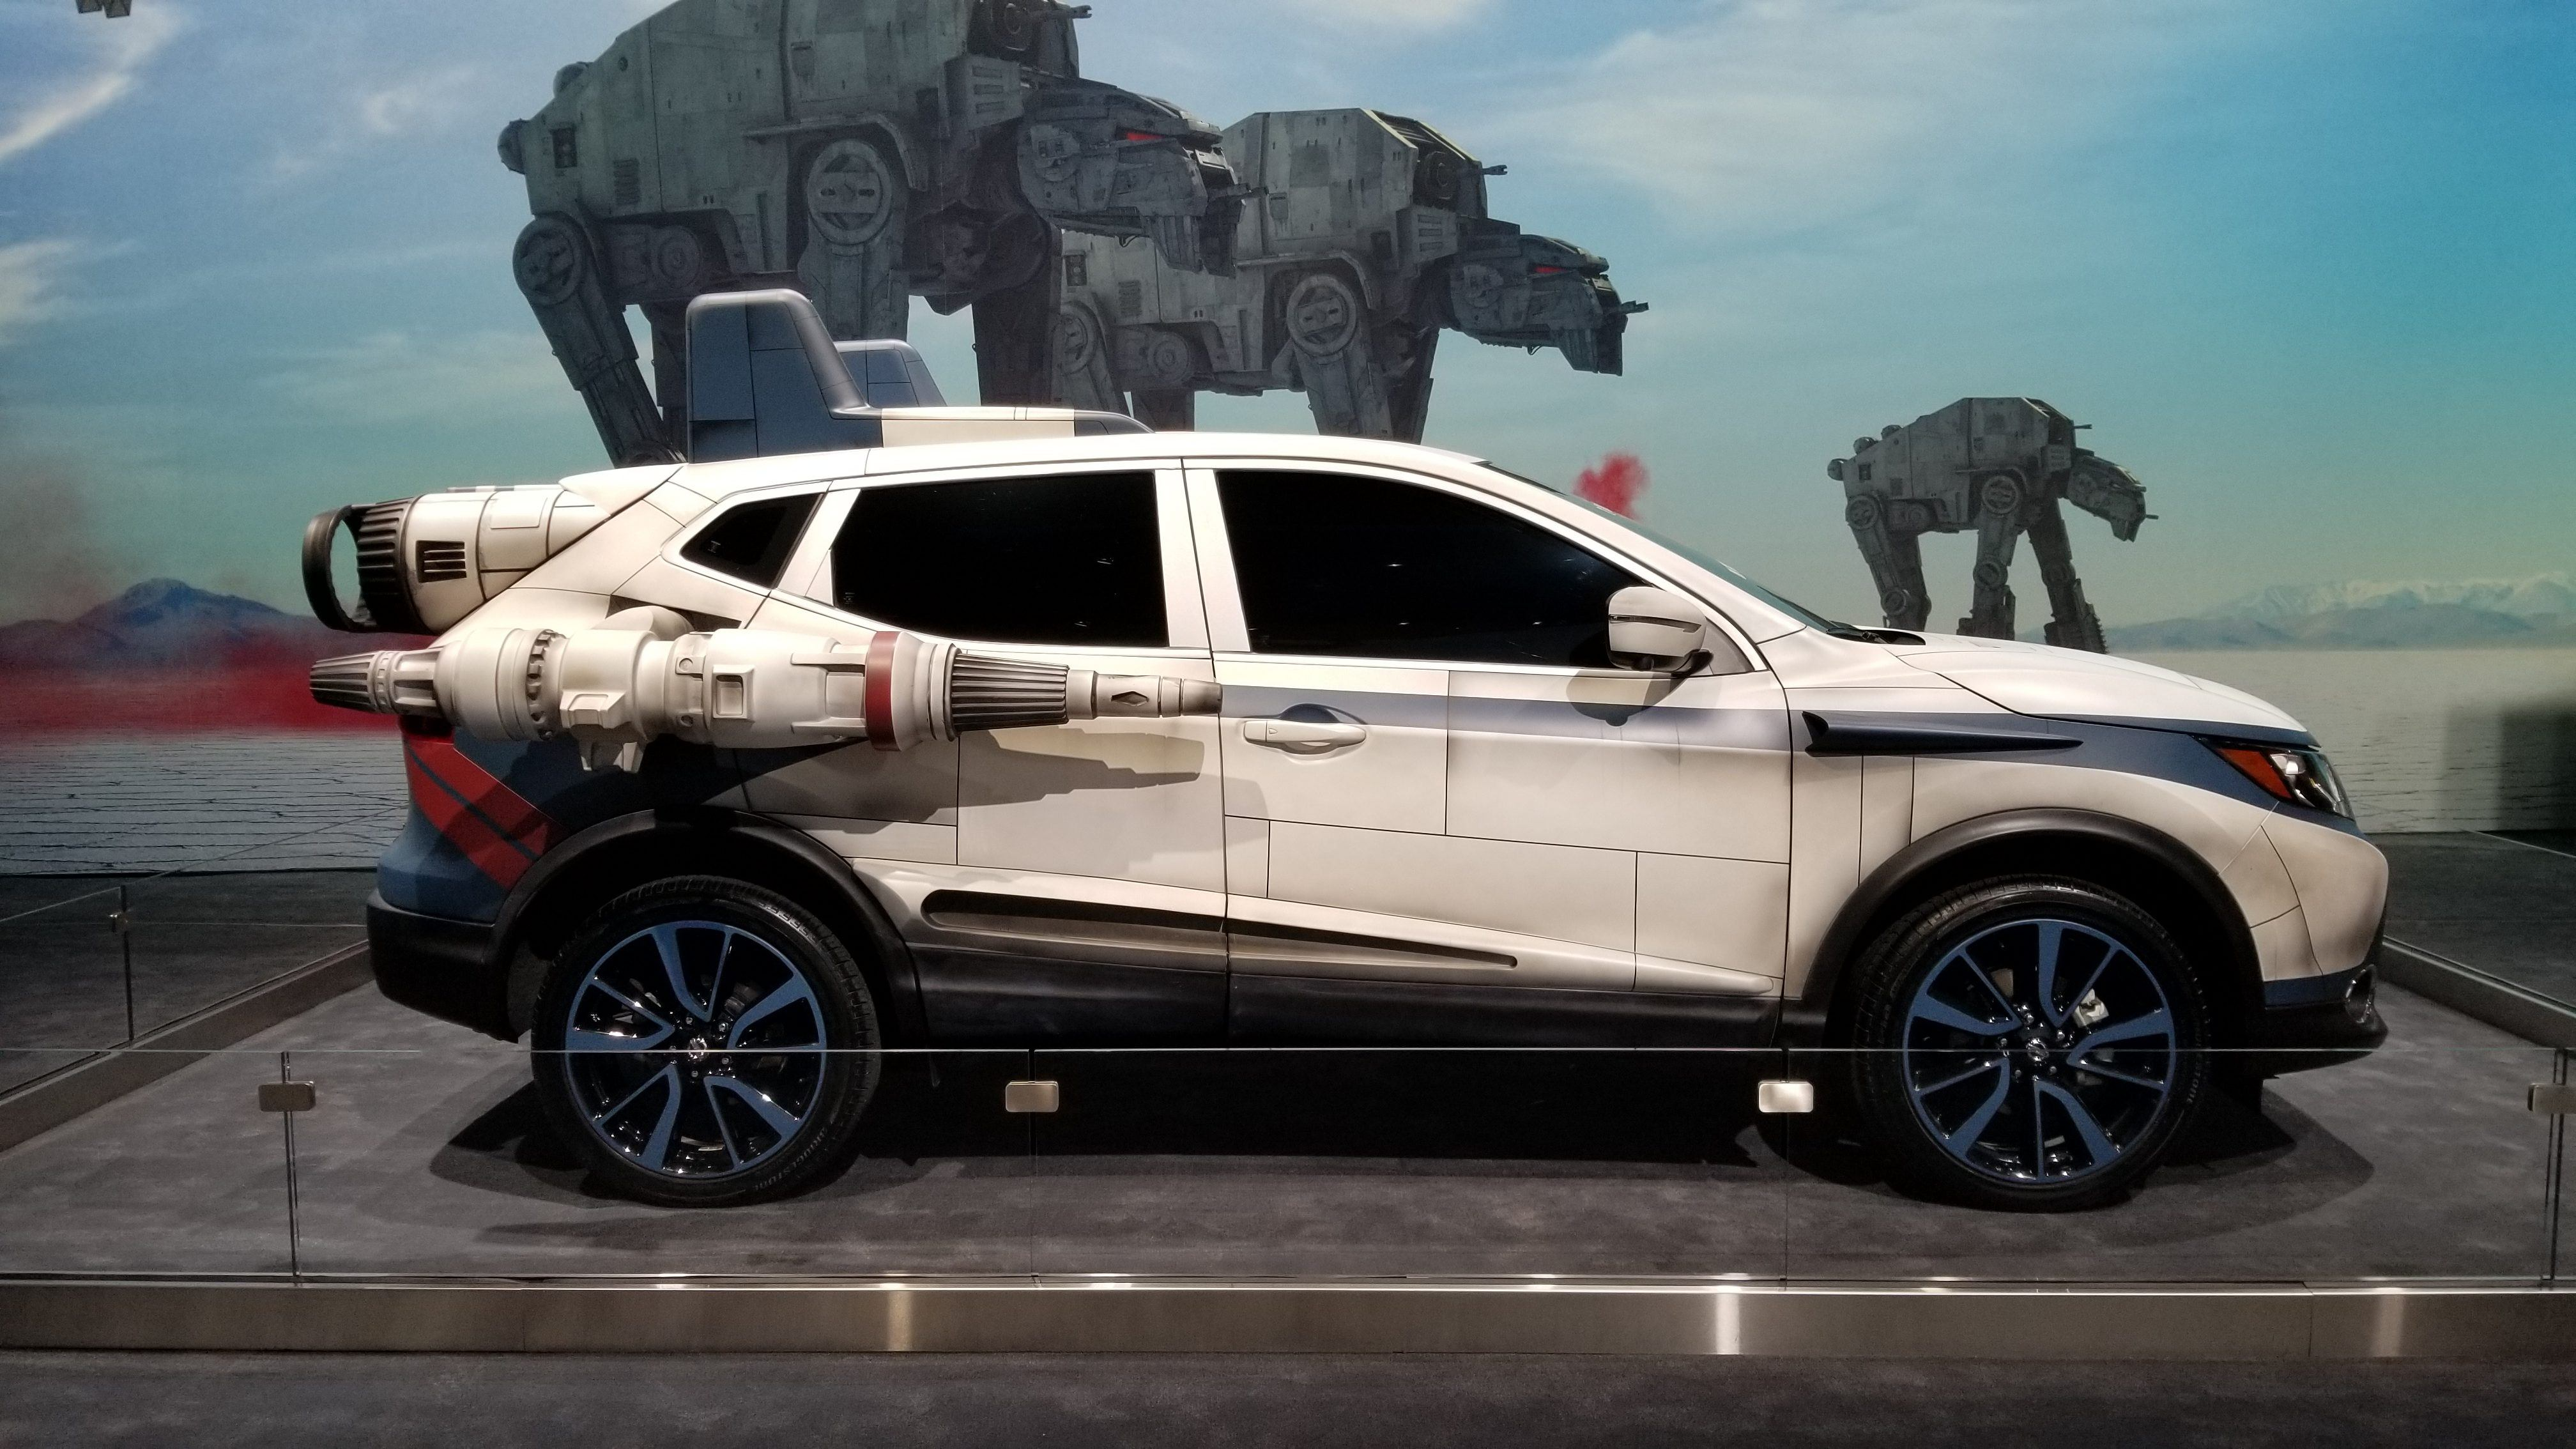 Car Wars: Here's Why The Star Wars And Nissan Partnership Works So